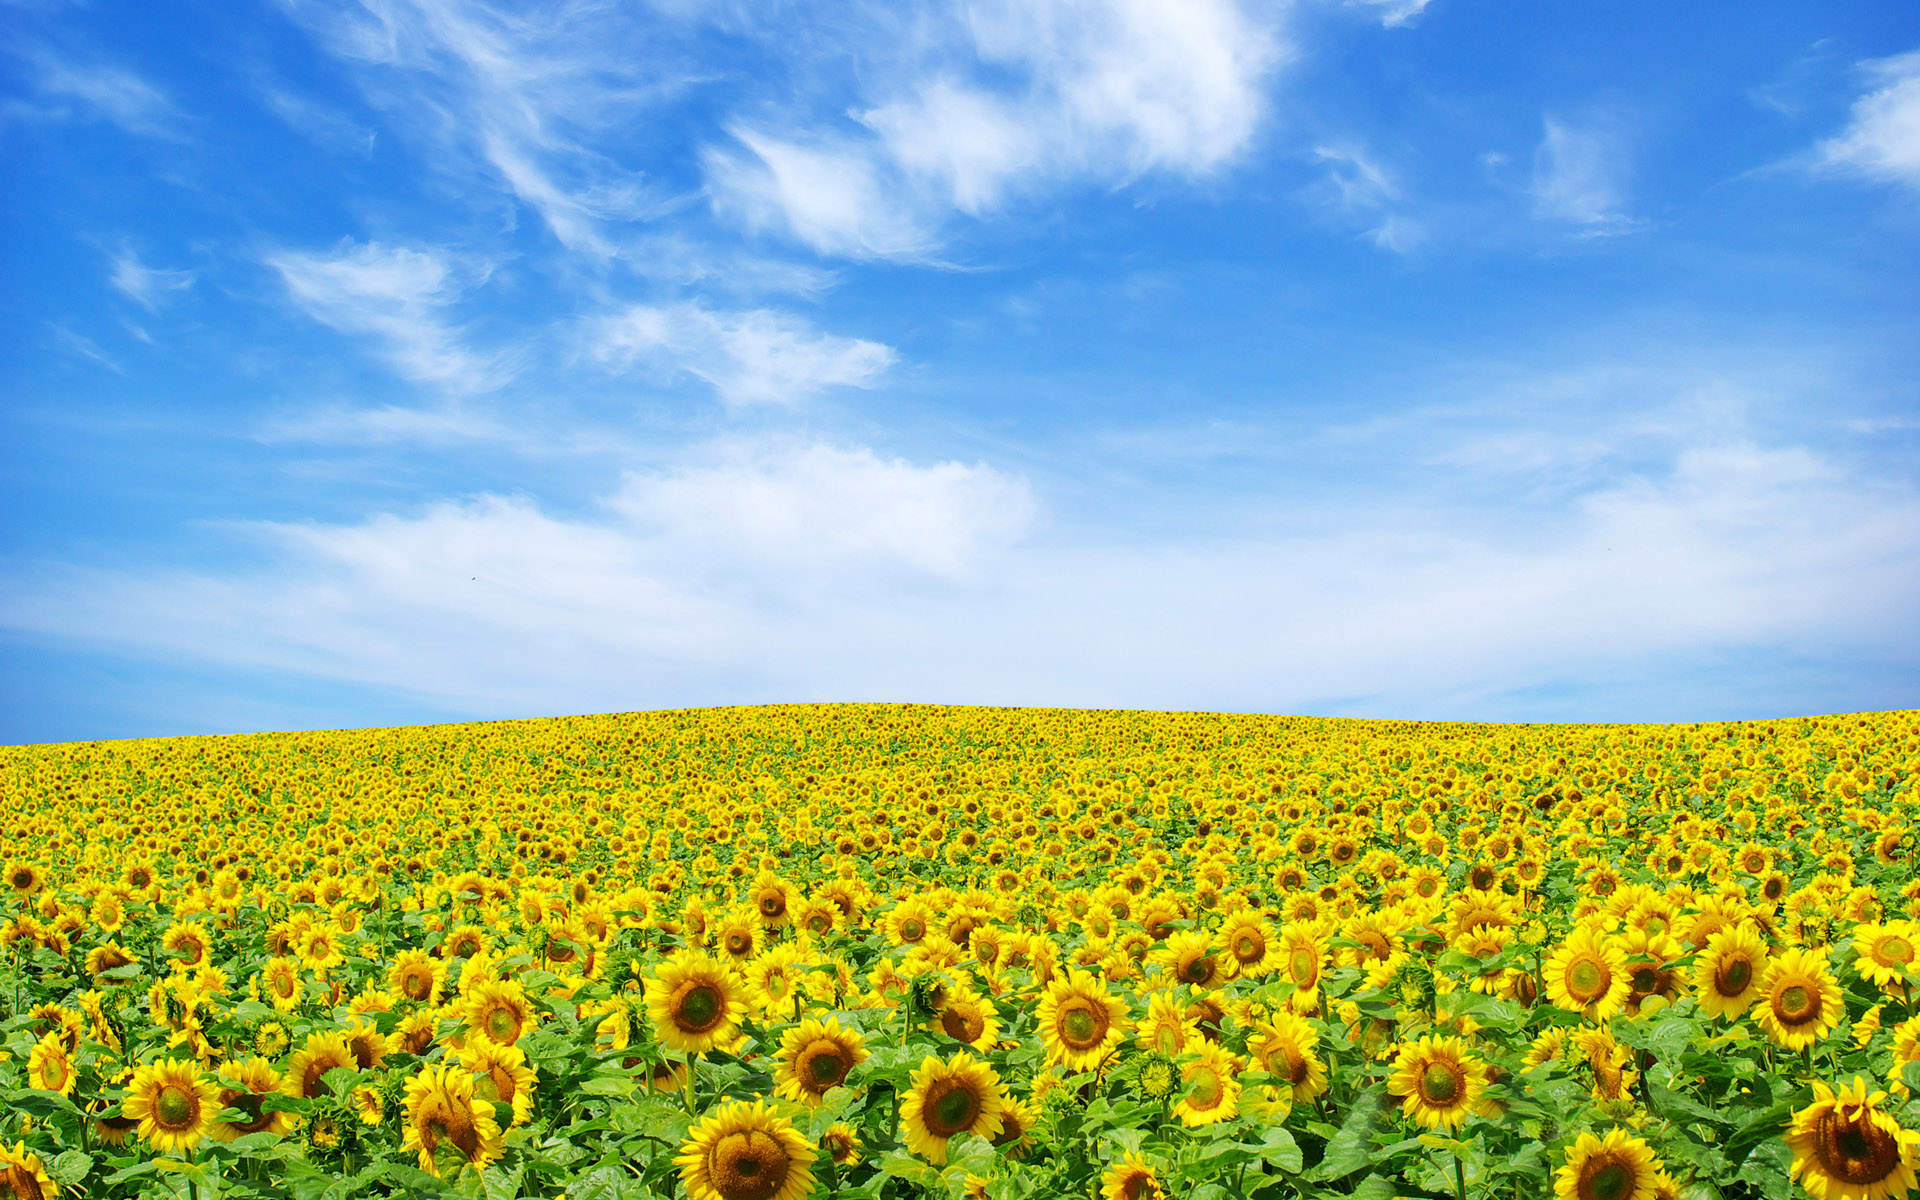 Sunflower Landscape 591.49 Kb